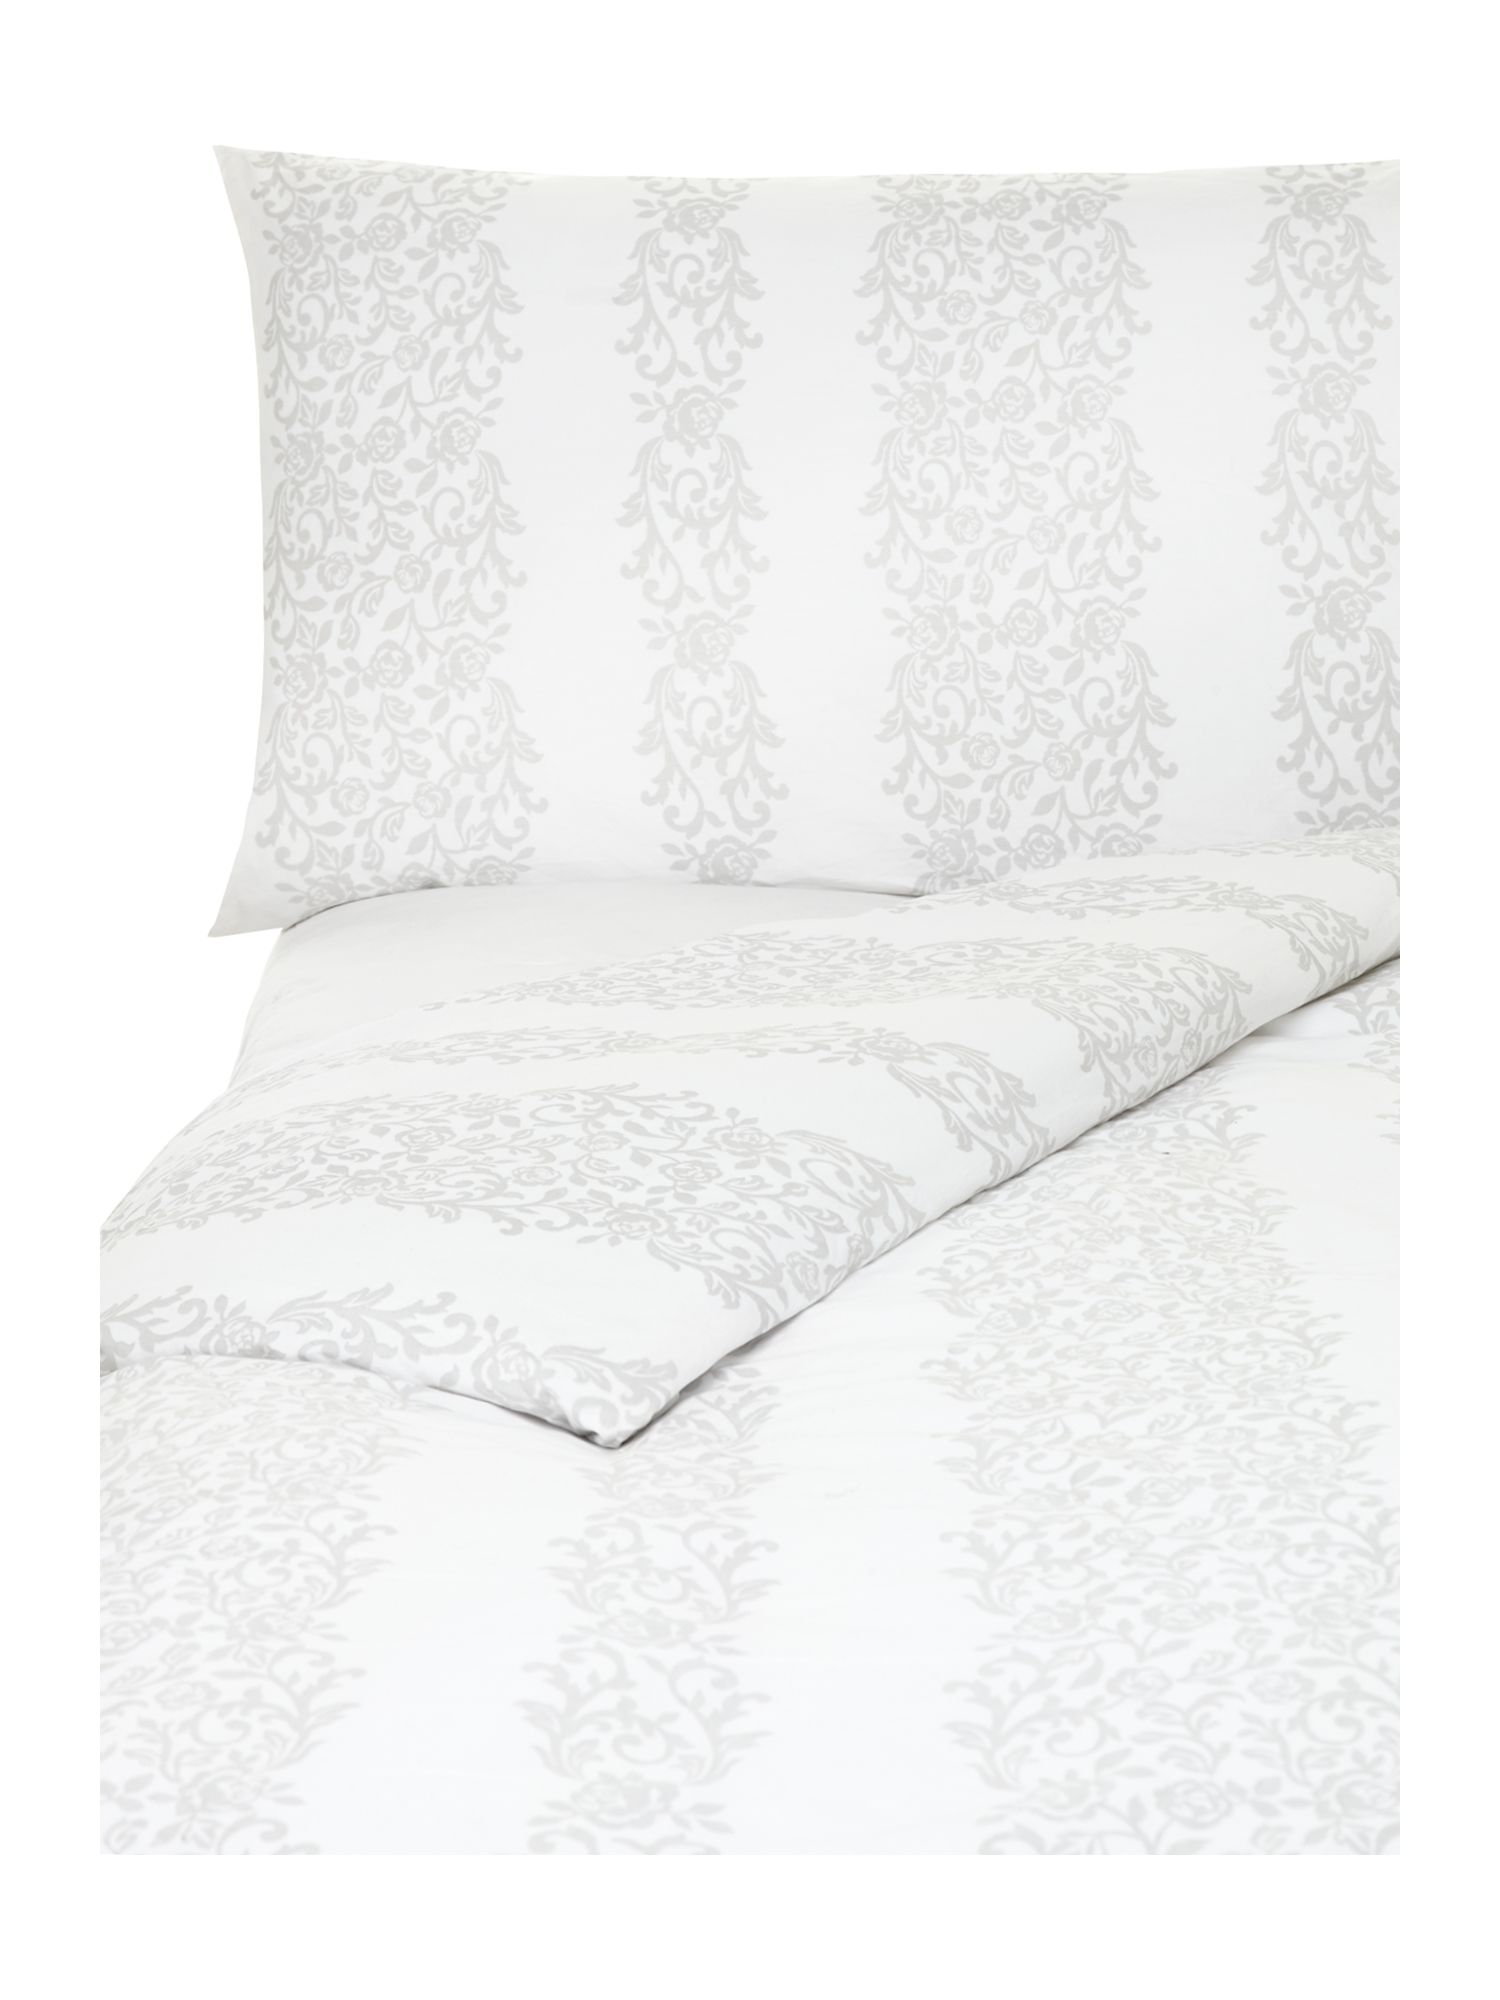 Voile white frill bed linen in grey